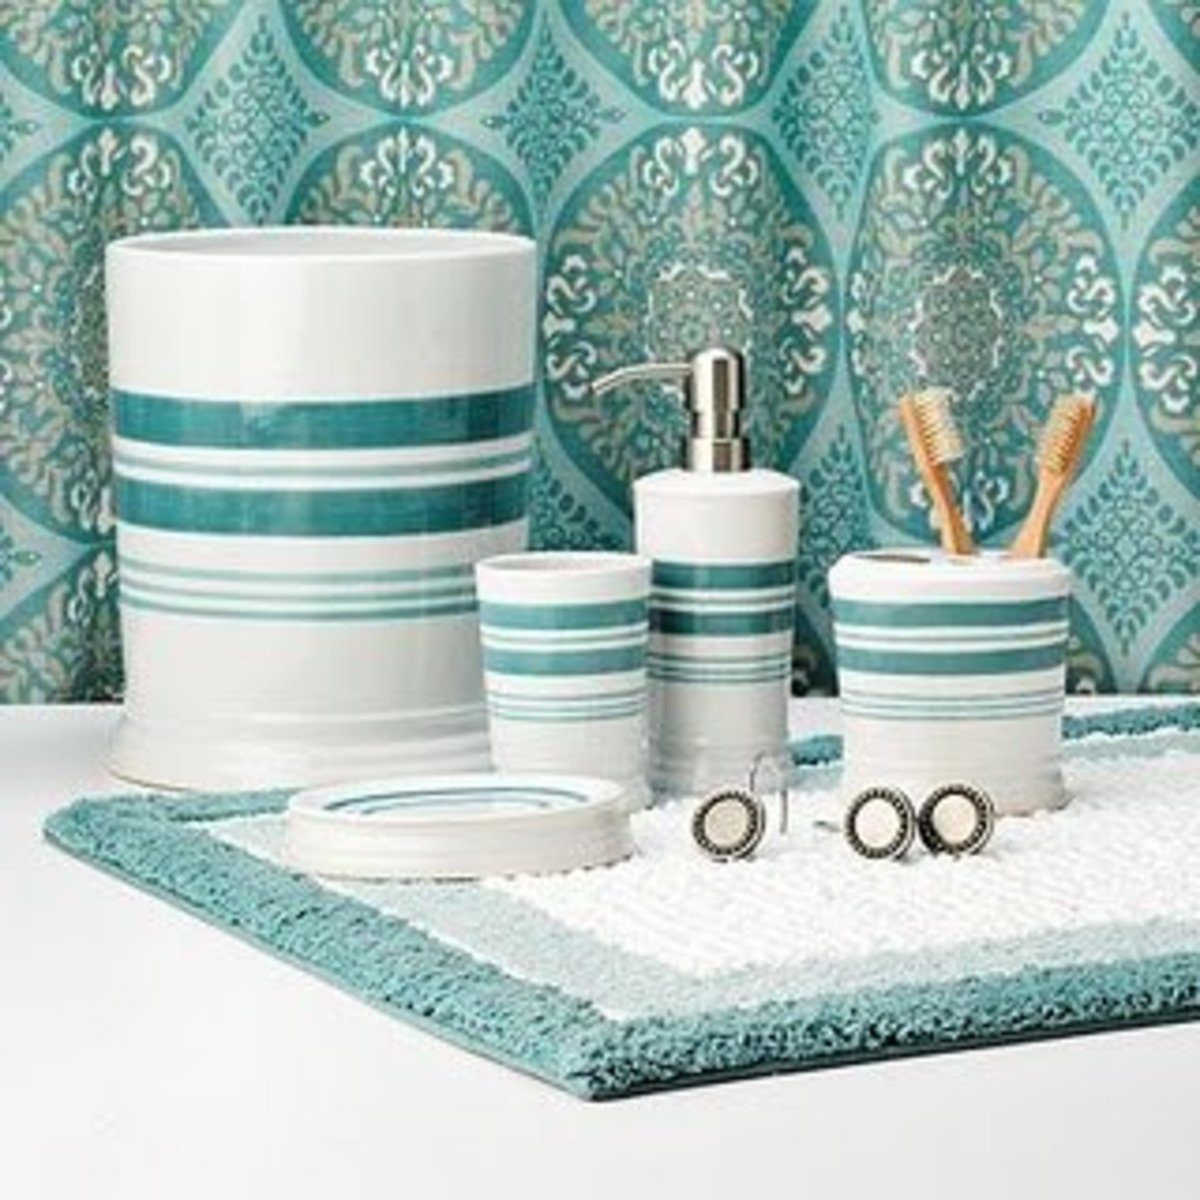 Aqua teal and turquoise home remodeling ideas dengarden for Turquoise blue bathroom accessories